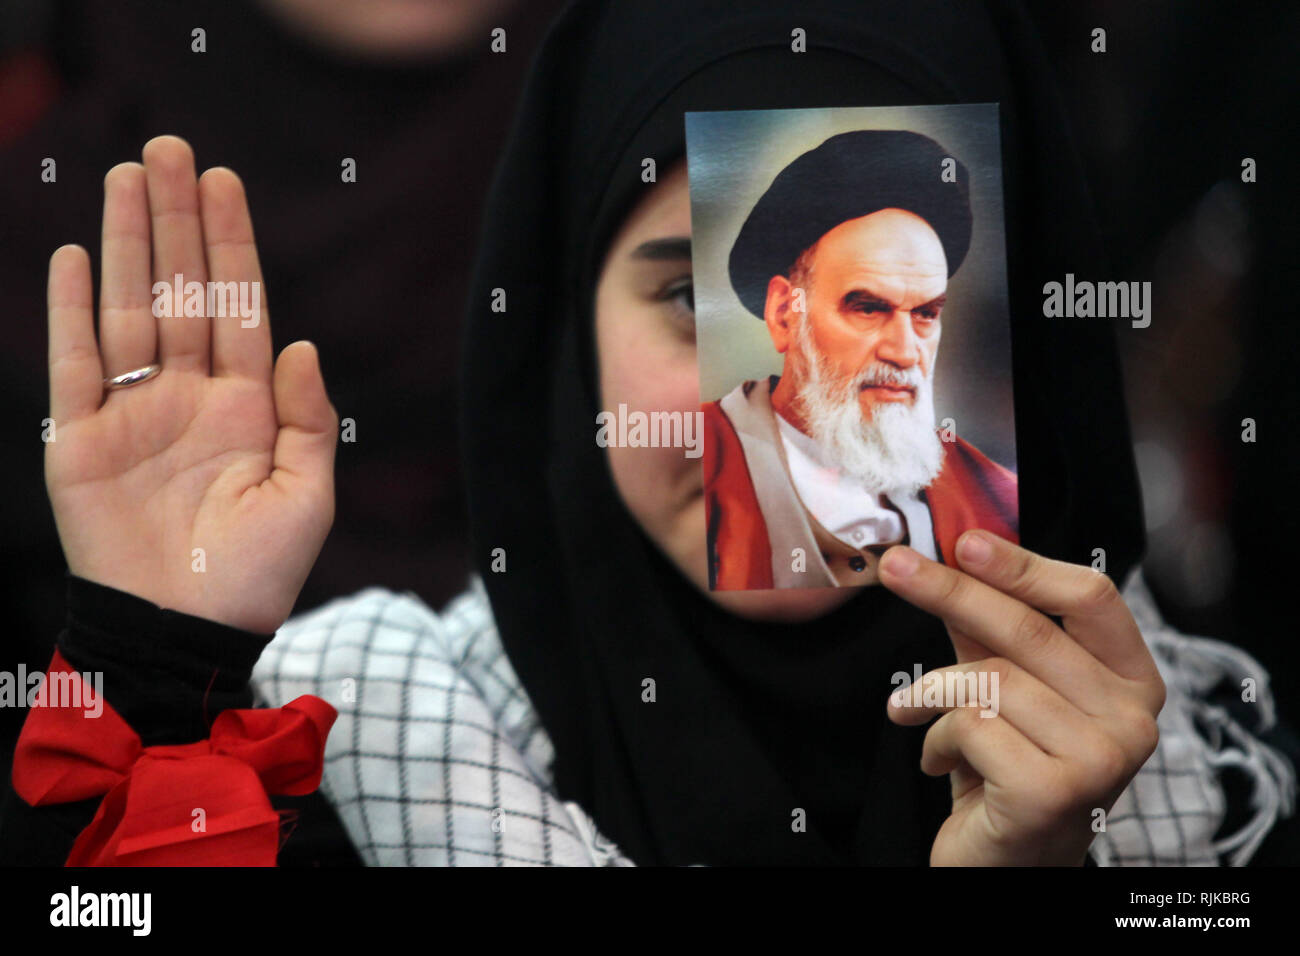 06 February 2019, Lebanon, Beirut: A supporter of Hezbollah, the pro-Iranian Lebanese Islamist political party and militant group, holds a picture of Ayatollah Khomeini, former Supreme Leader of Iran and leader of the 1979 Iranian Revolution, during a rally to mark the 40th anniversary of the Iranian Islamic Revolution which toppled Mohammad Reza Pahlavi, the last Shah of Iran. Photo: Marwan Naamani/dpa - Stock Image